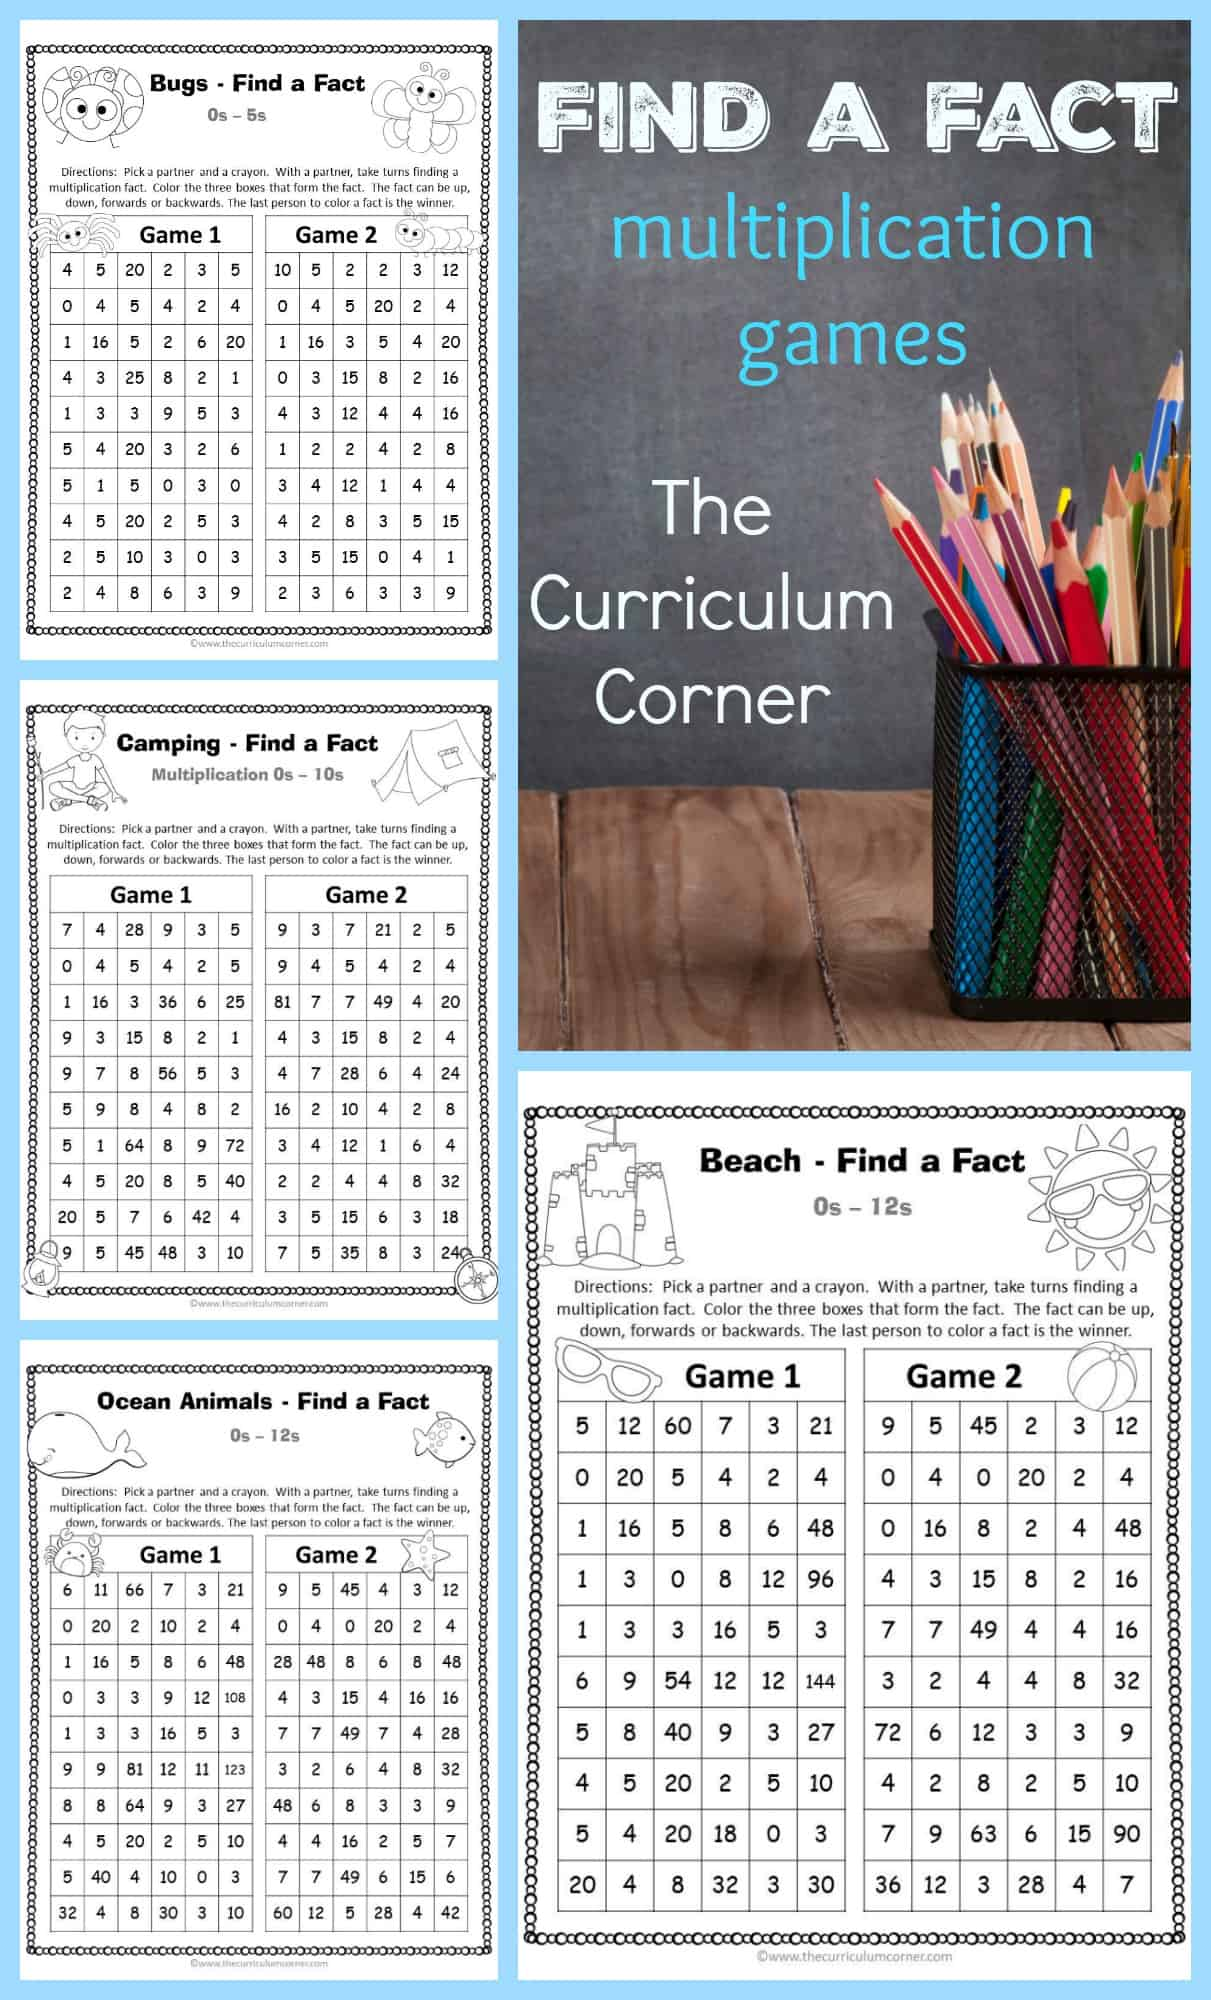 Find A Fact Multiplication Games